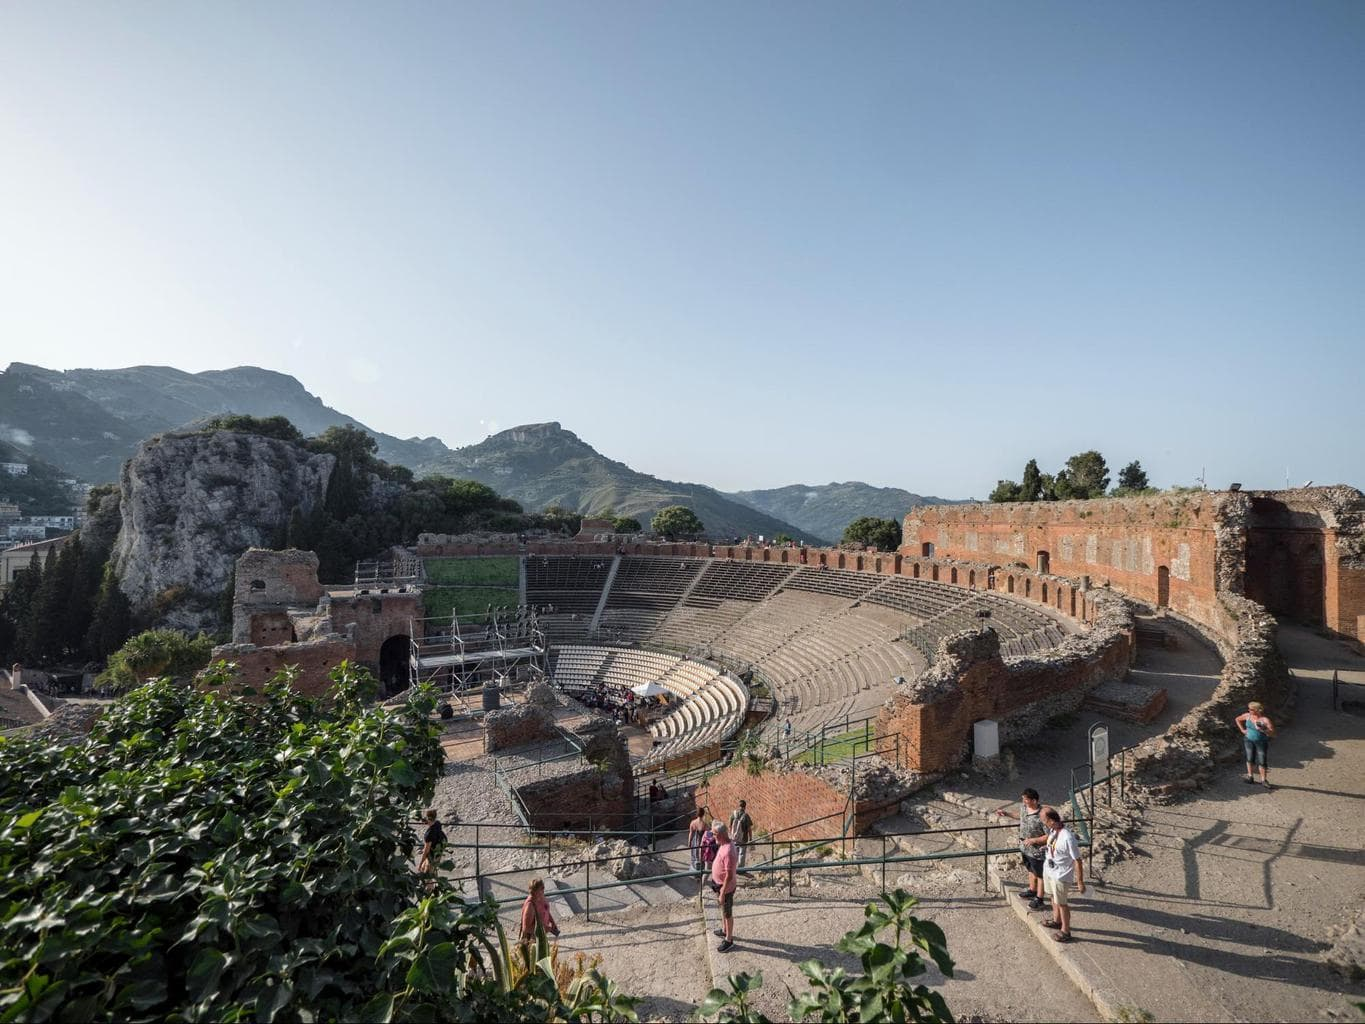 The entrance to the portico of Taormina's Ancient Greek Theatre